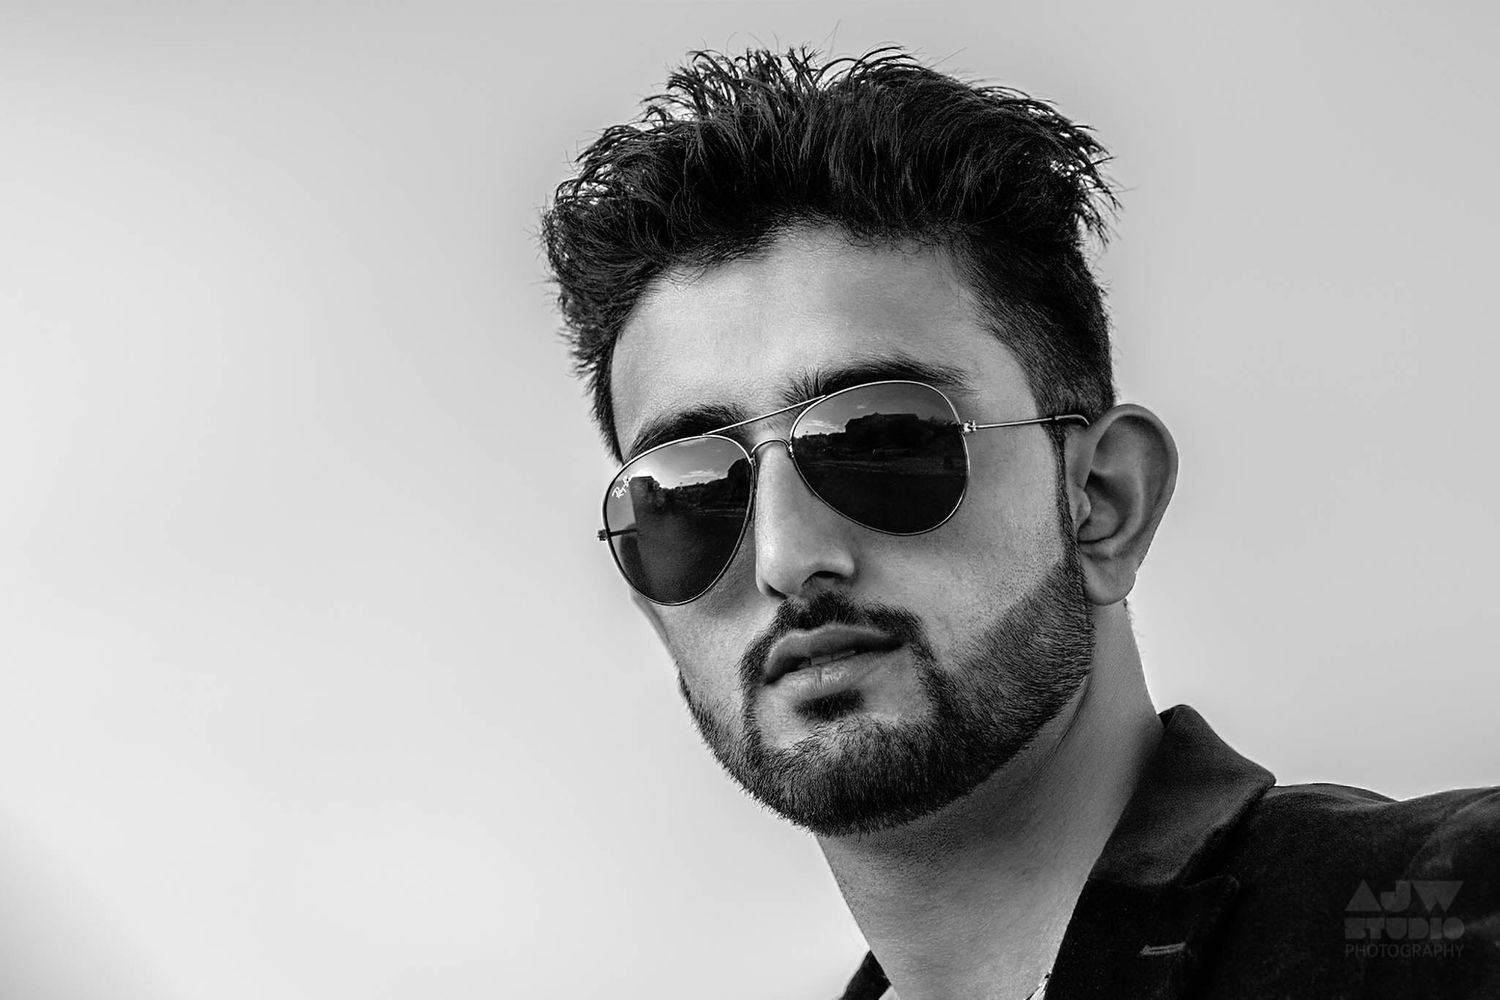 bollywood singer wearing sunglasses